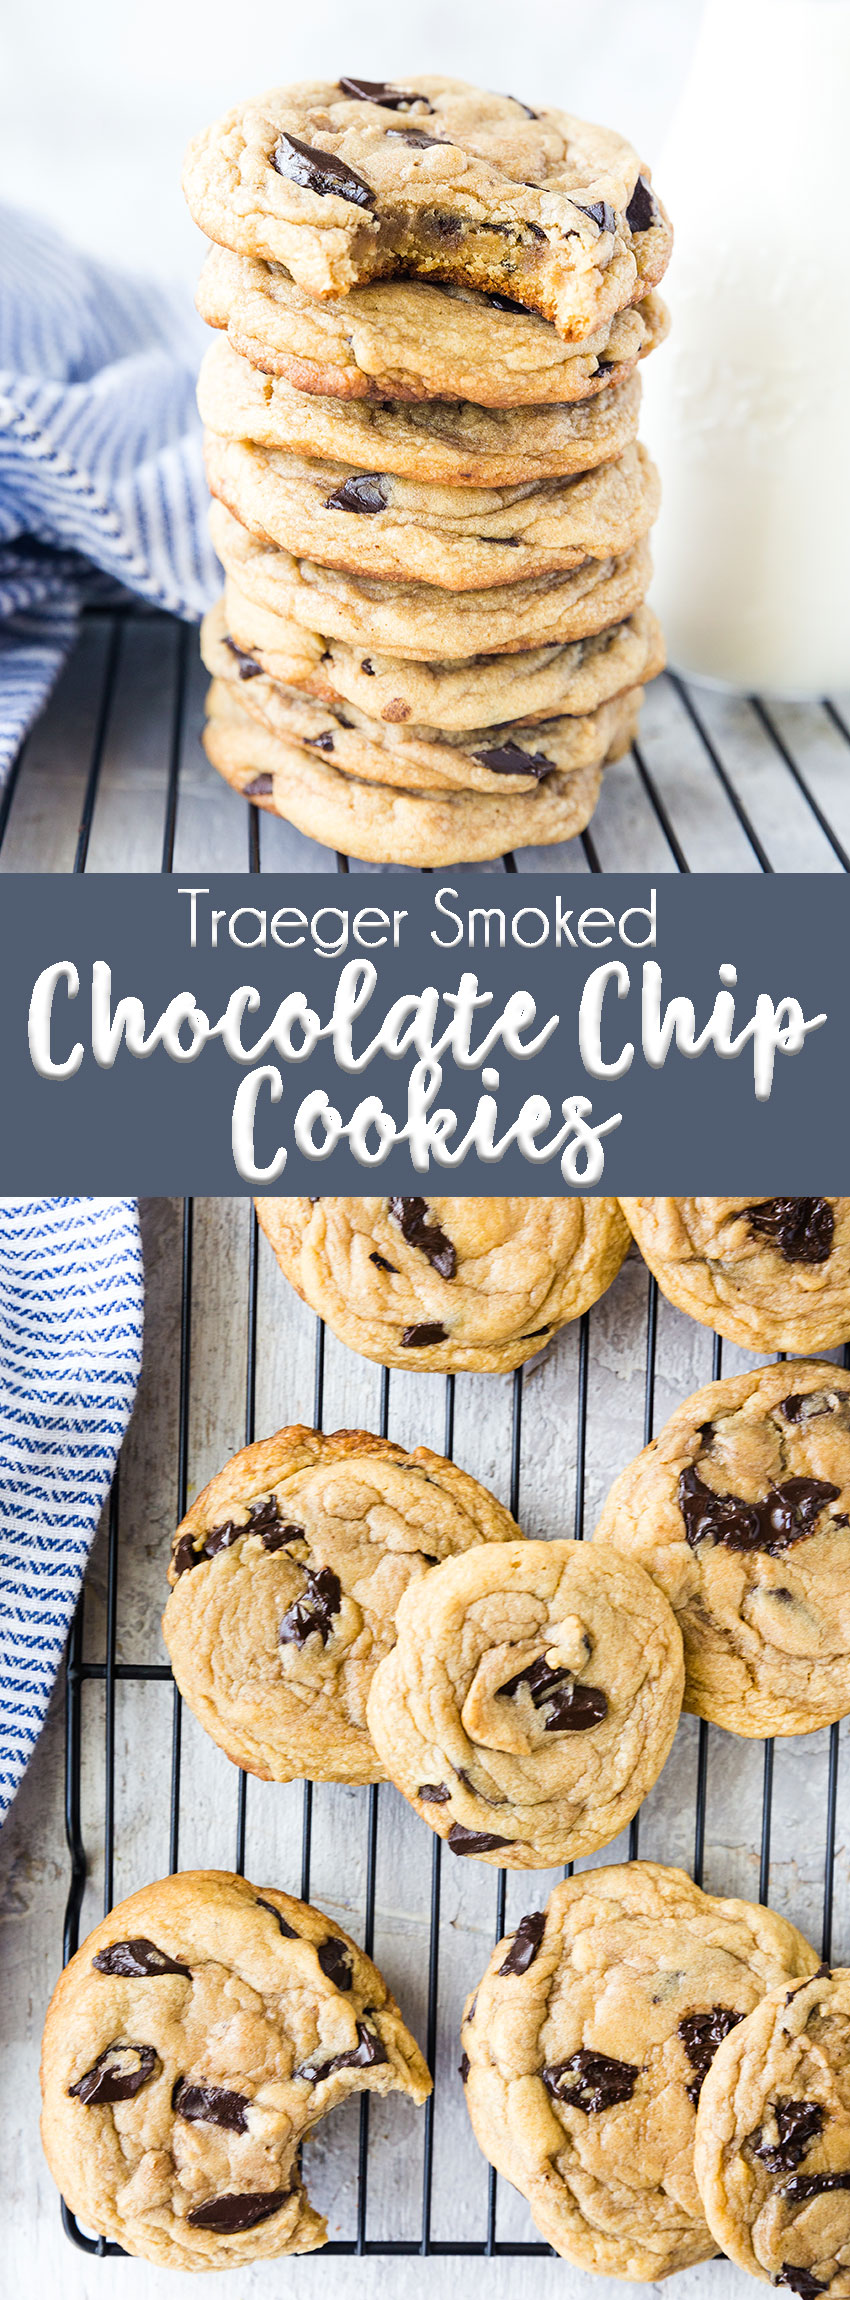 Traeger Smoked Chocolate Chip Cookies- soft and chewy cookies with a slight smokiness.